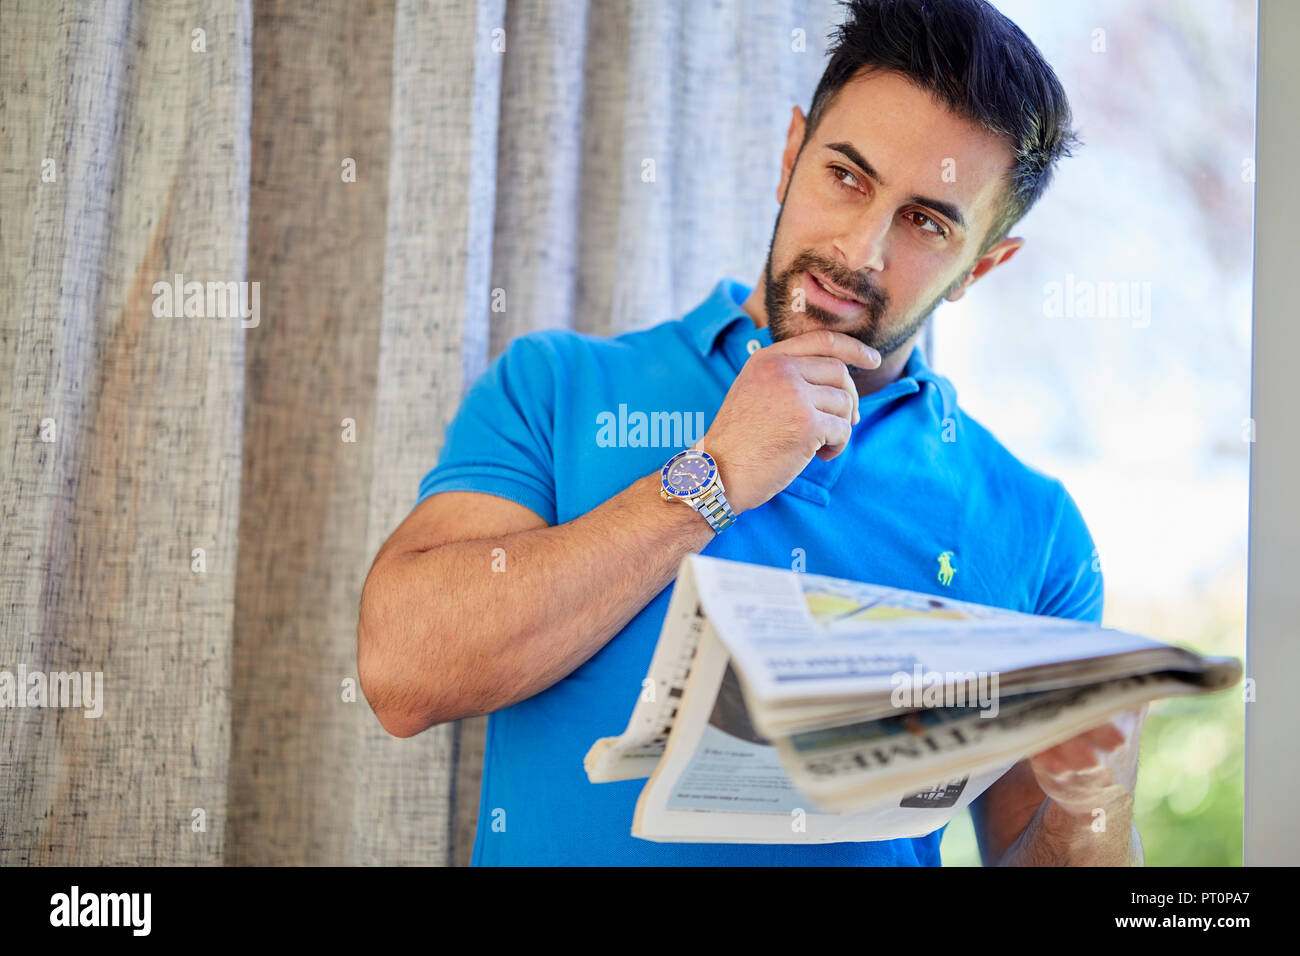 Man contemplating reading a paper - Stock Image